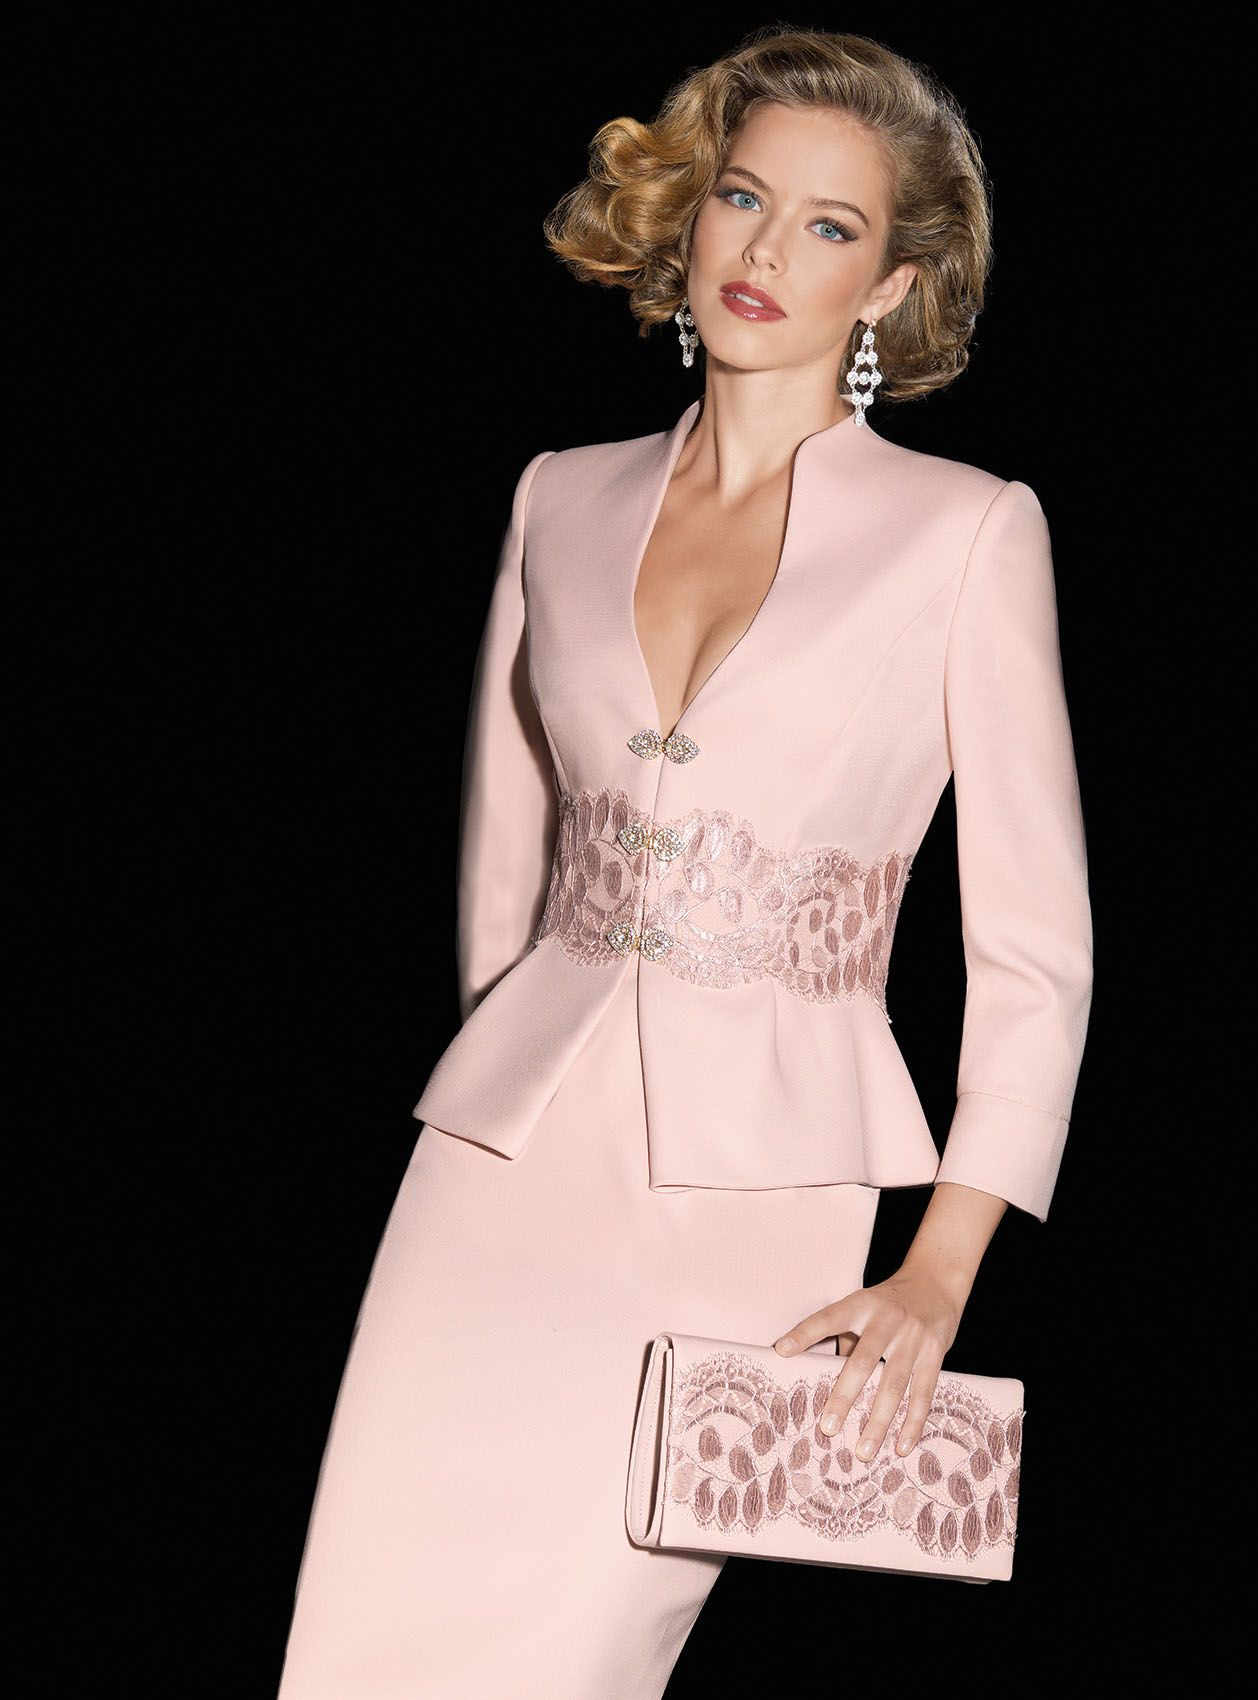 Teresa Ripoll 2014 collection - dress, jacket and matching bag in ...